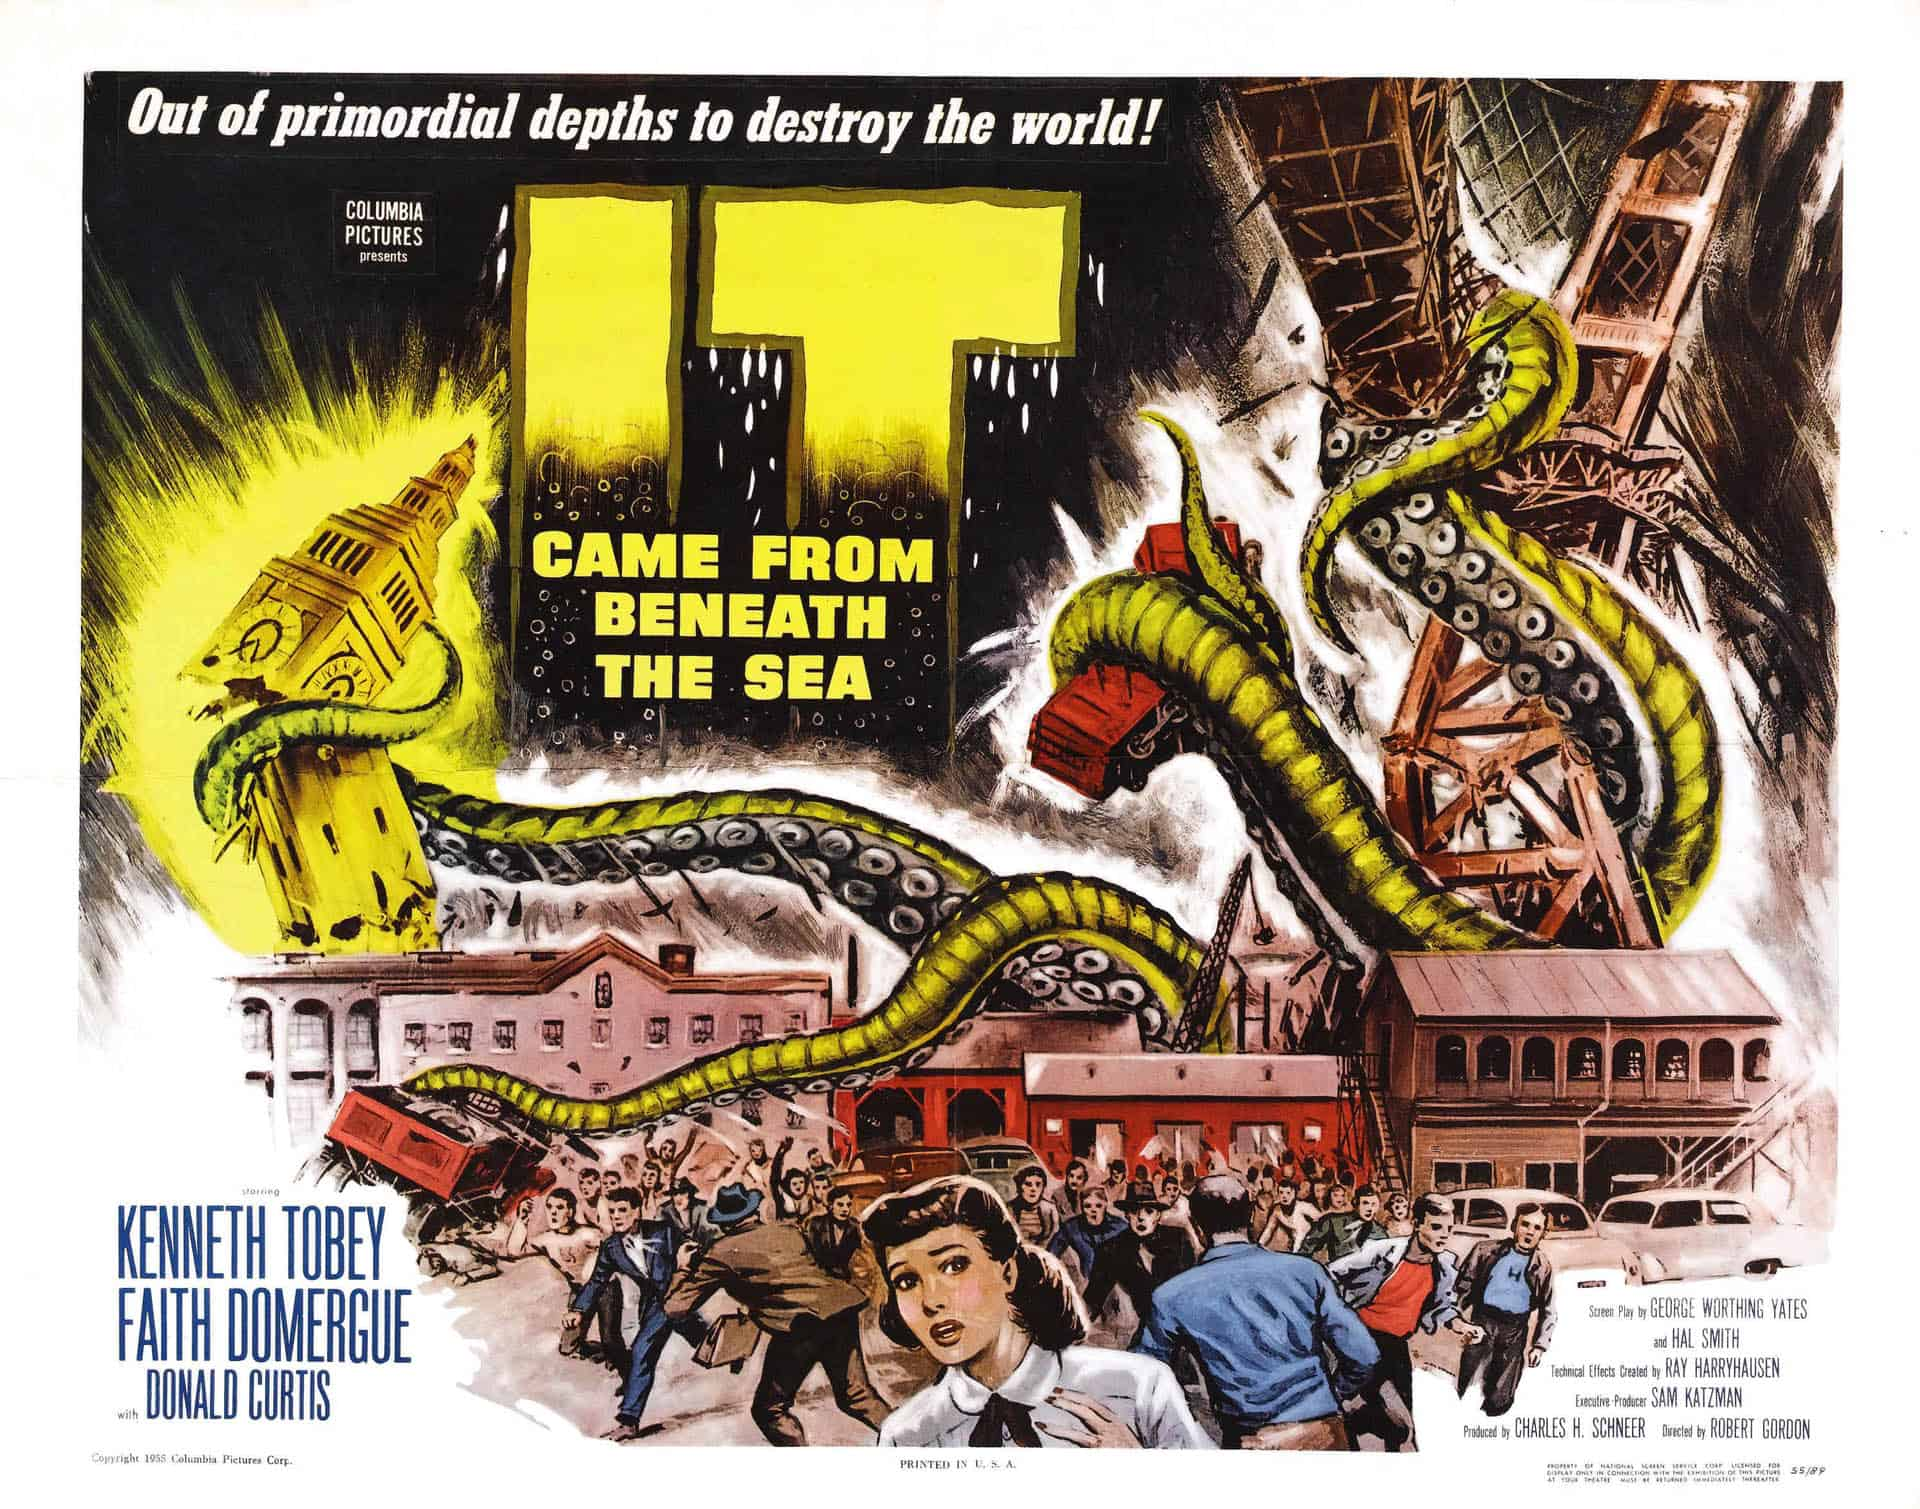 Movie Posters We Love: It Came From Beneath the Sea (1955)